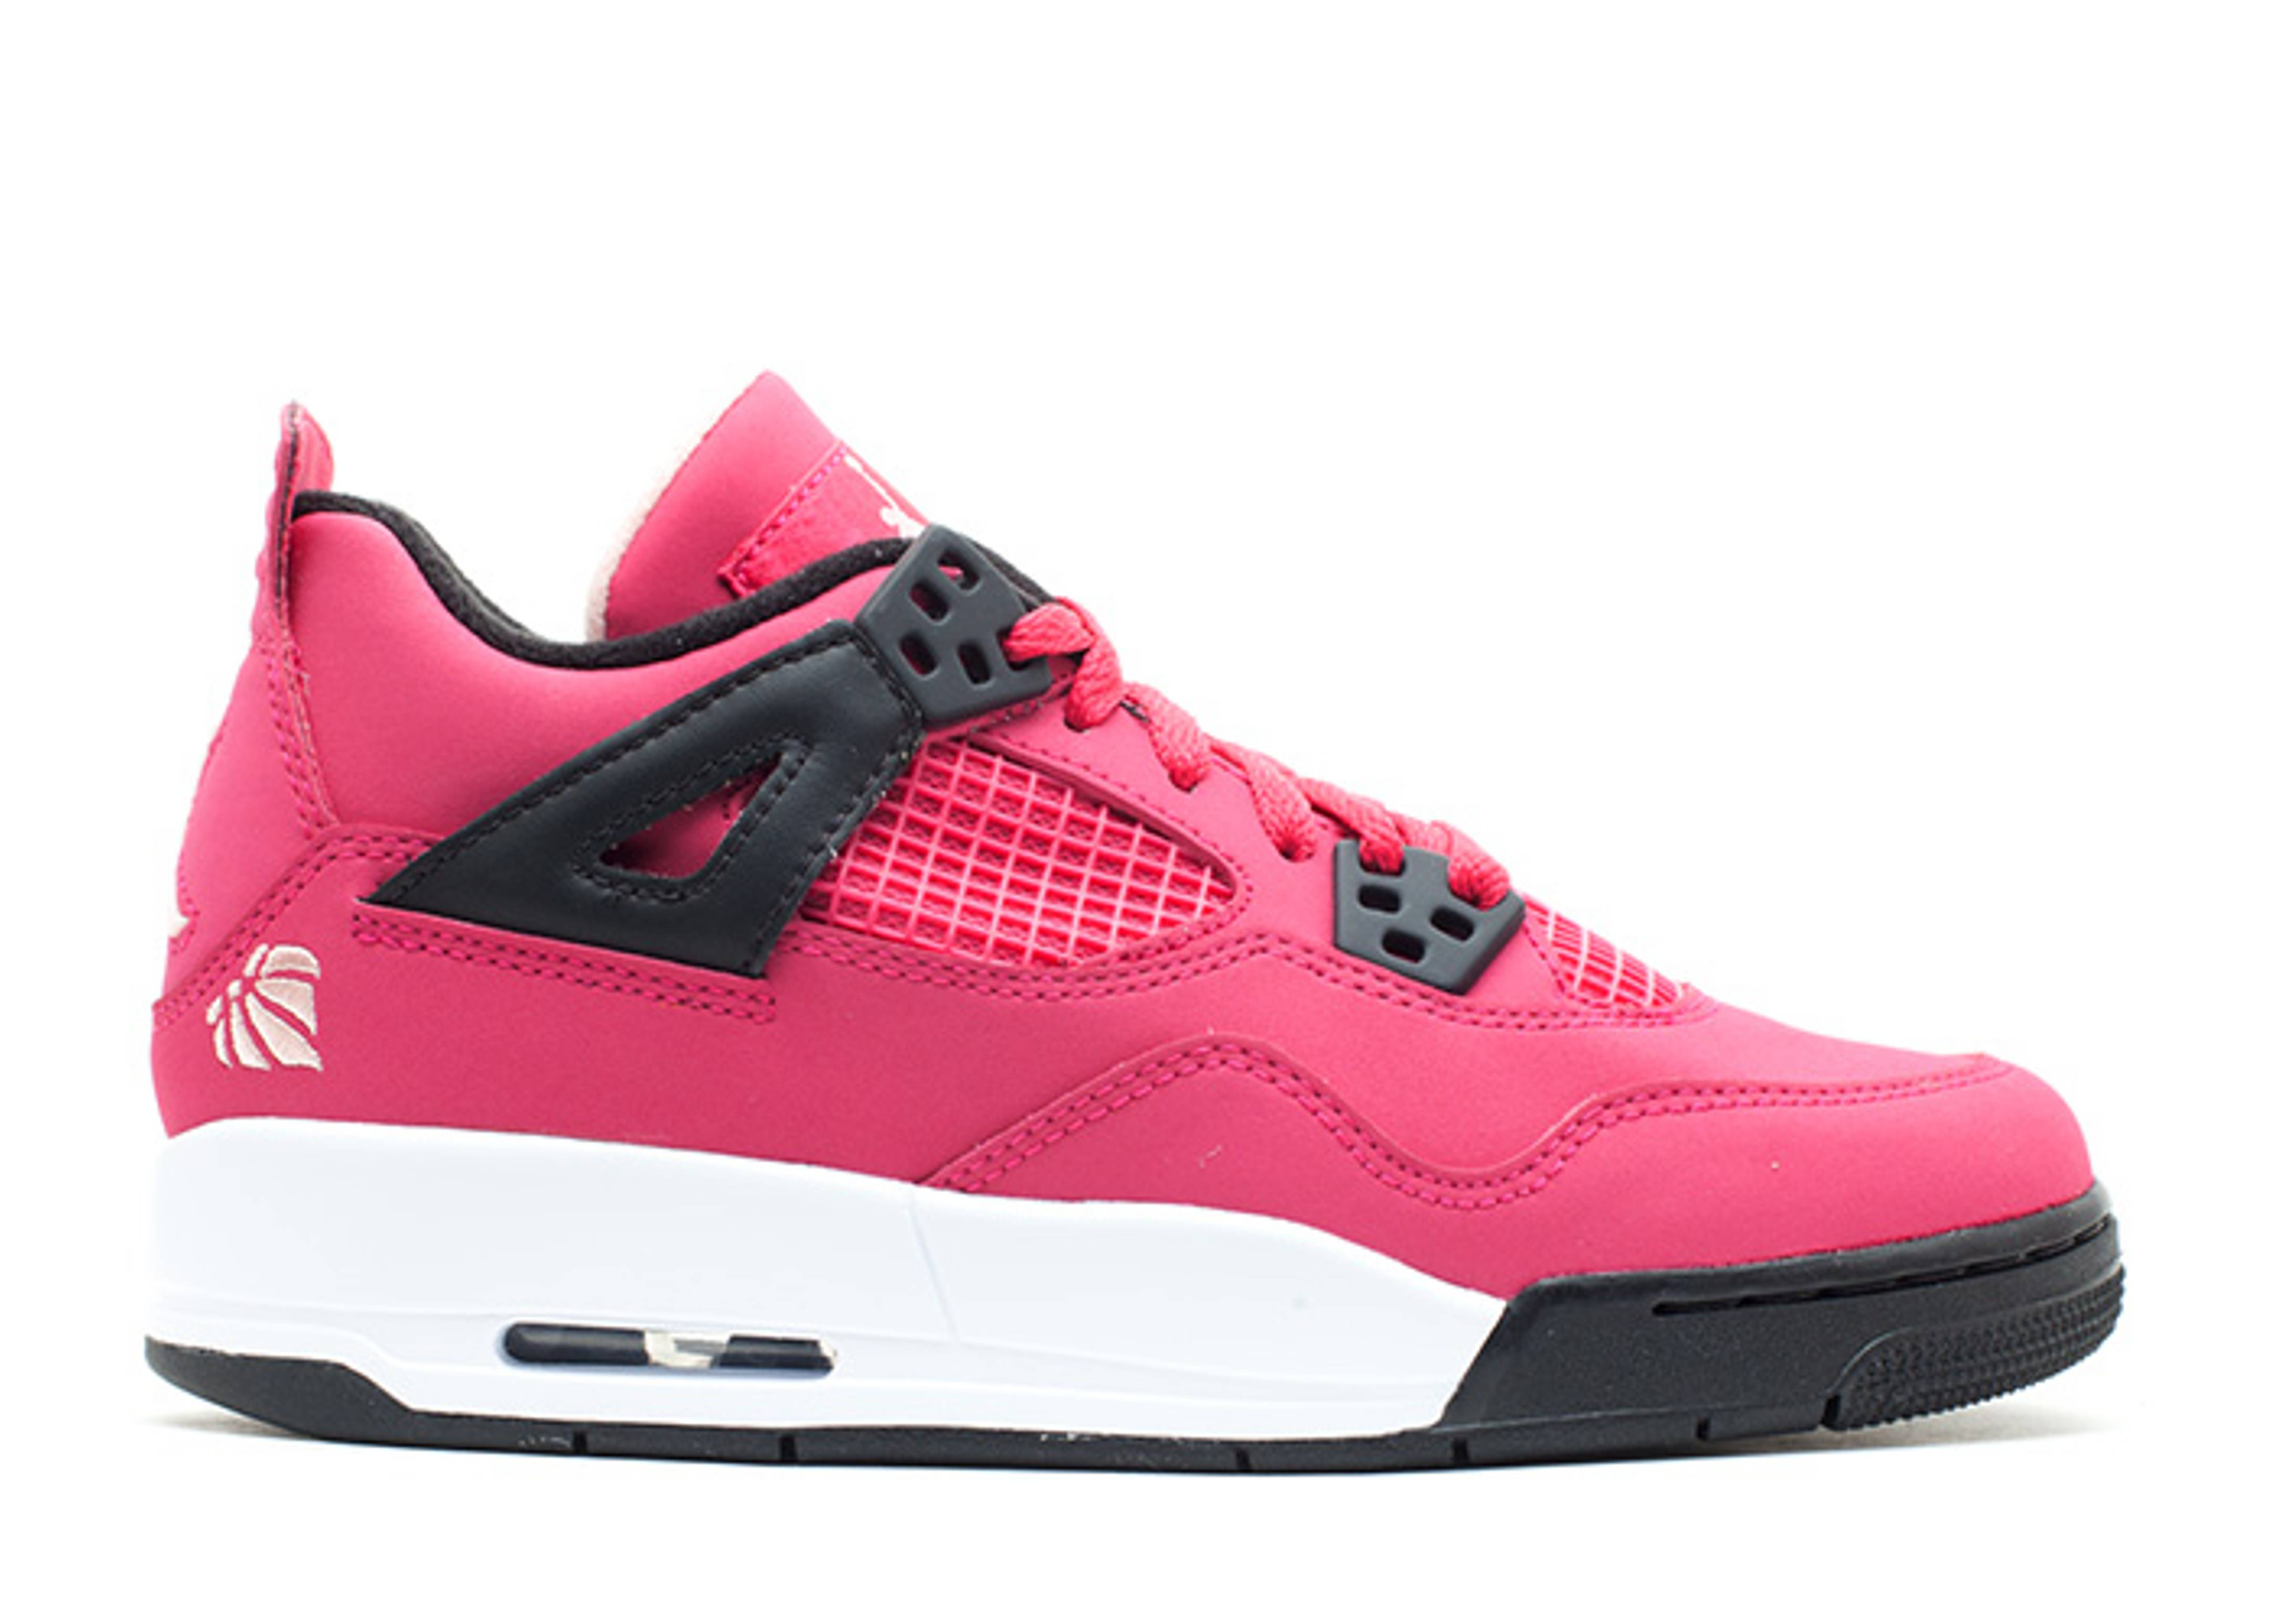 2b22c0f891da Girls Air Jordan 4 Retro (gs) - Air Jordan - 487724 601 - voltage ...